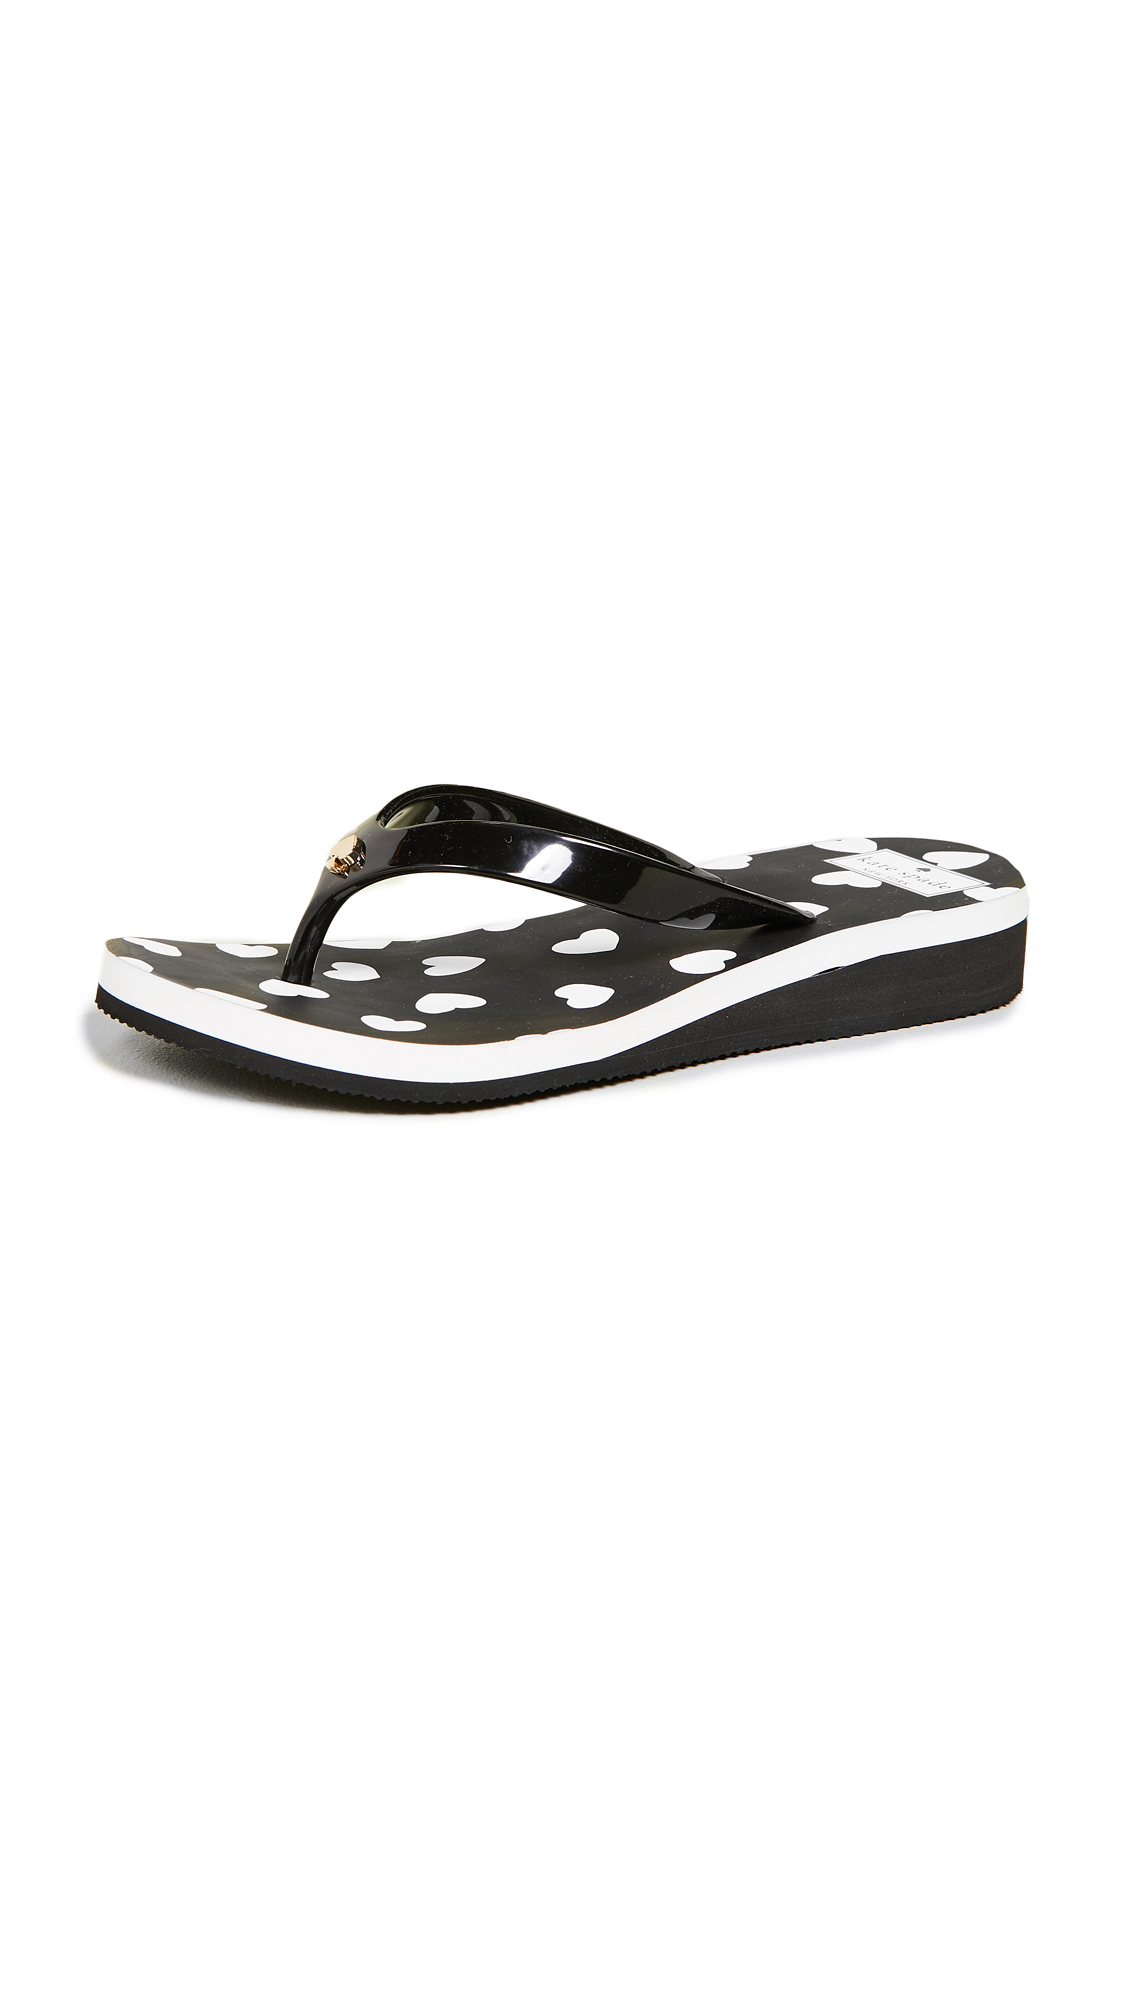 Milli Flip-Flop Sandals in Black/White from Kate Spade